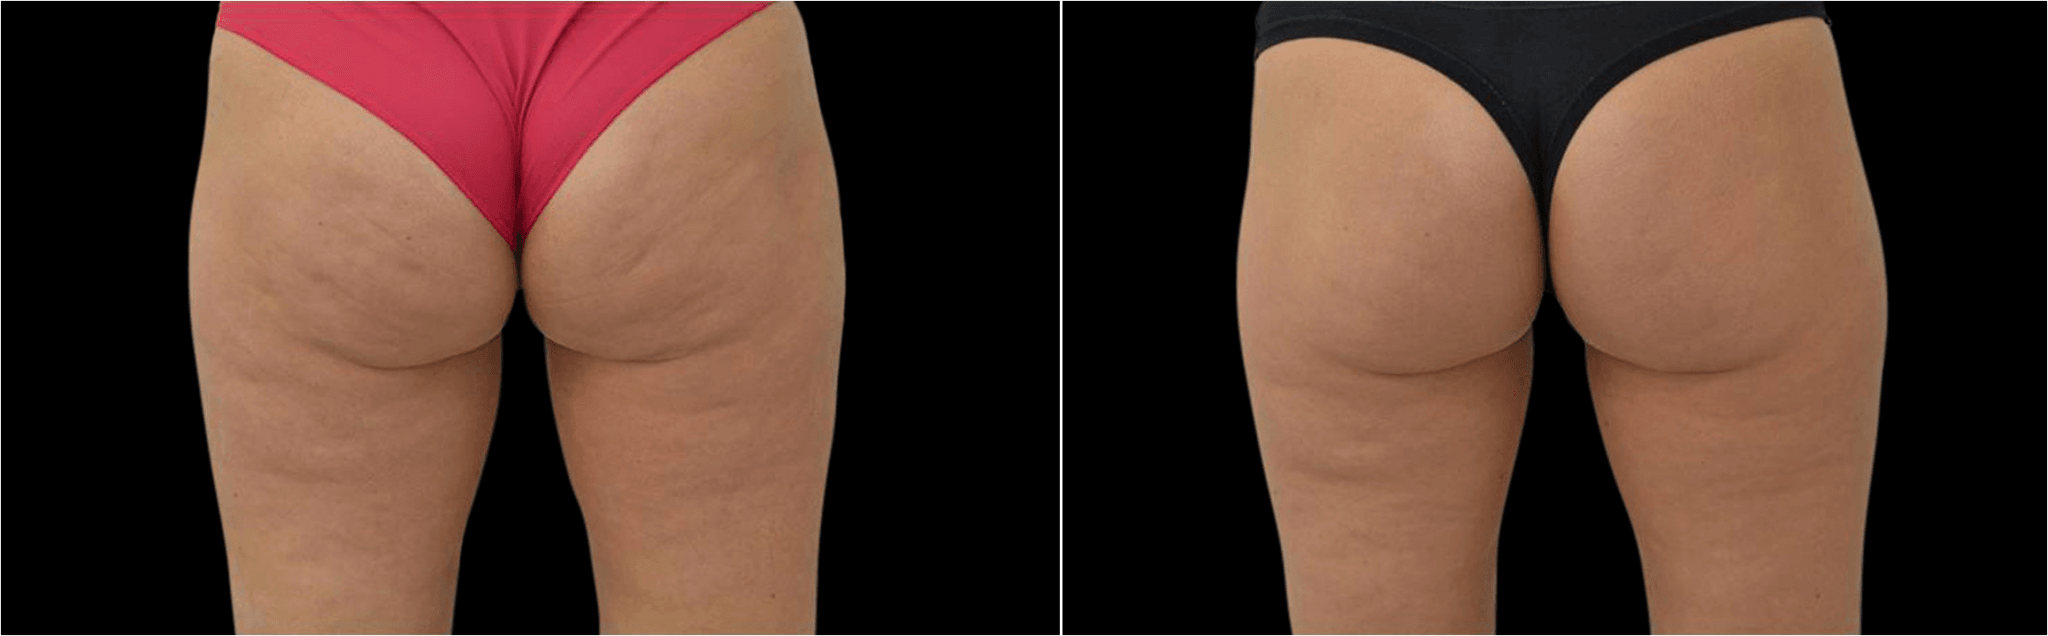 Introducing our NEW treatment for CELLULITE – the BTL Unison